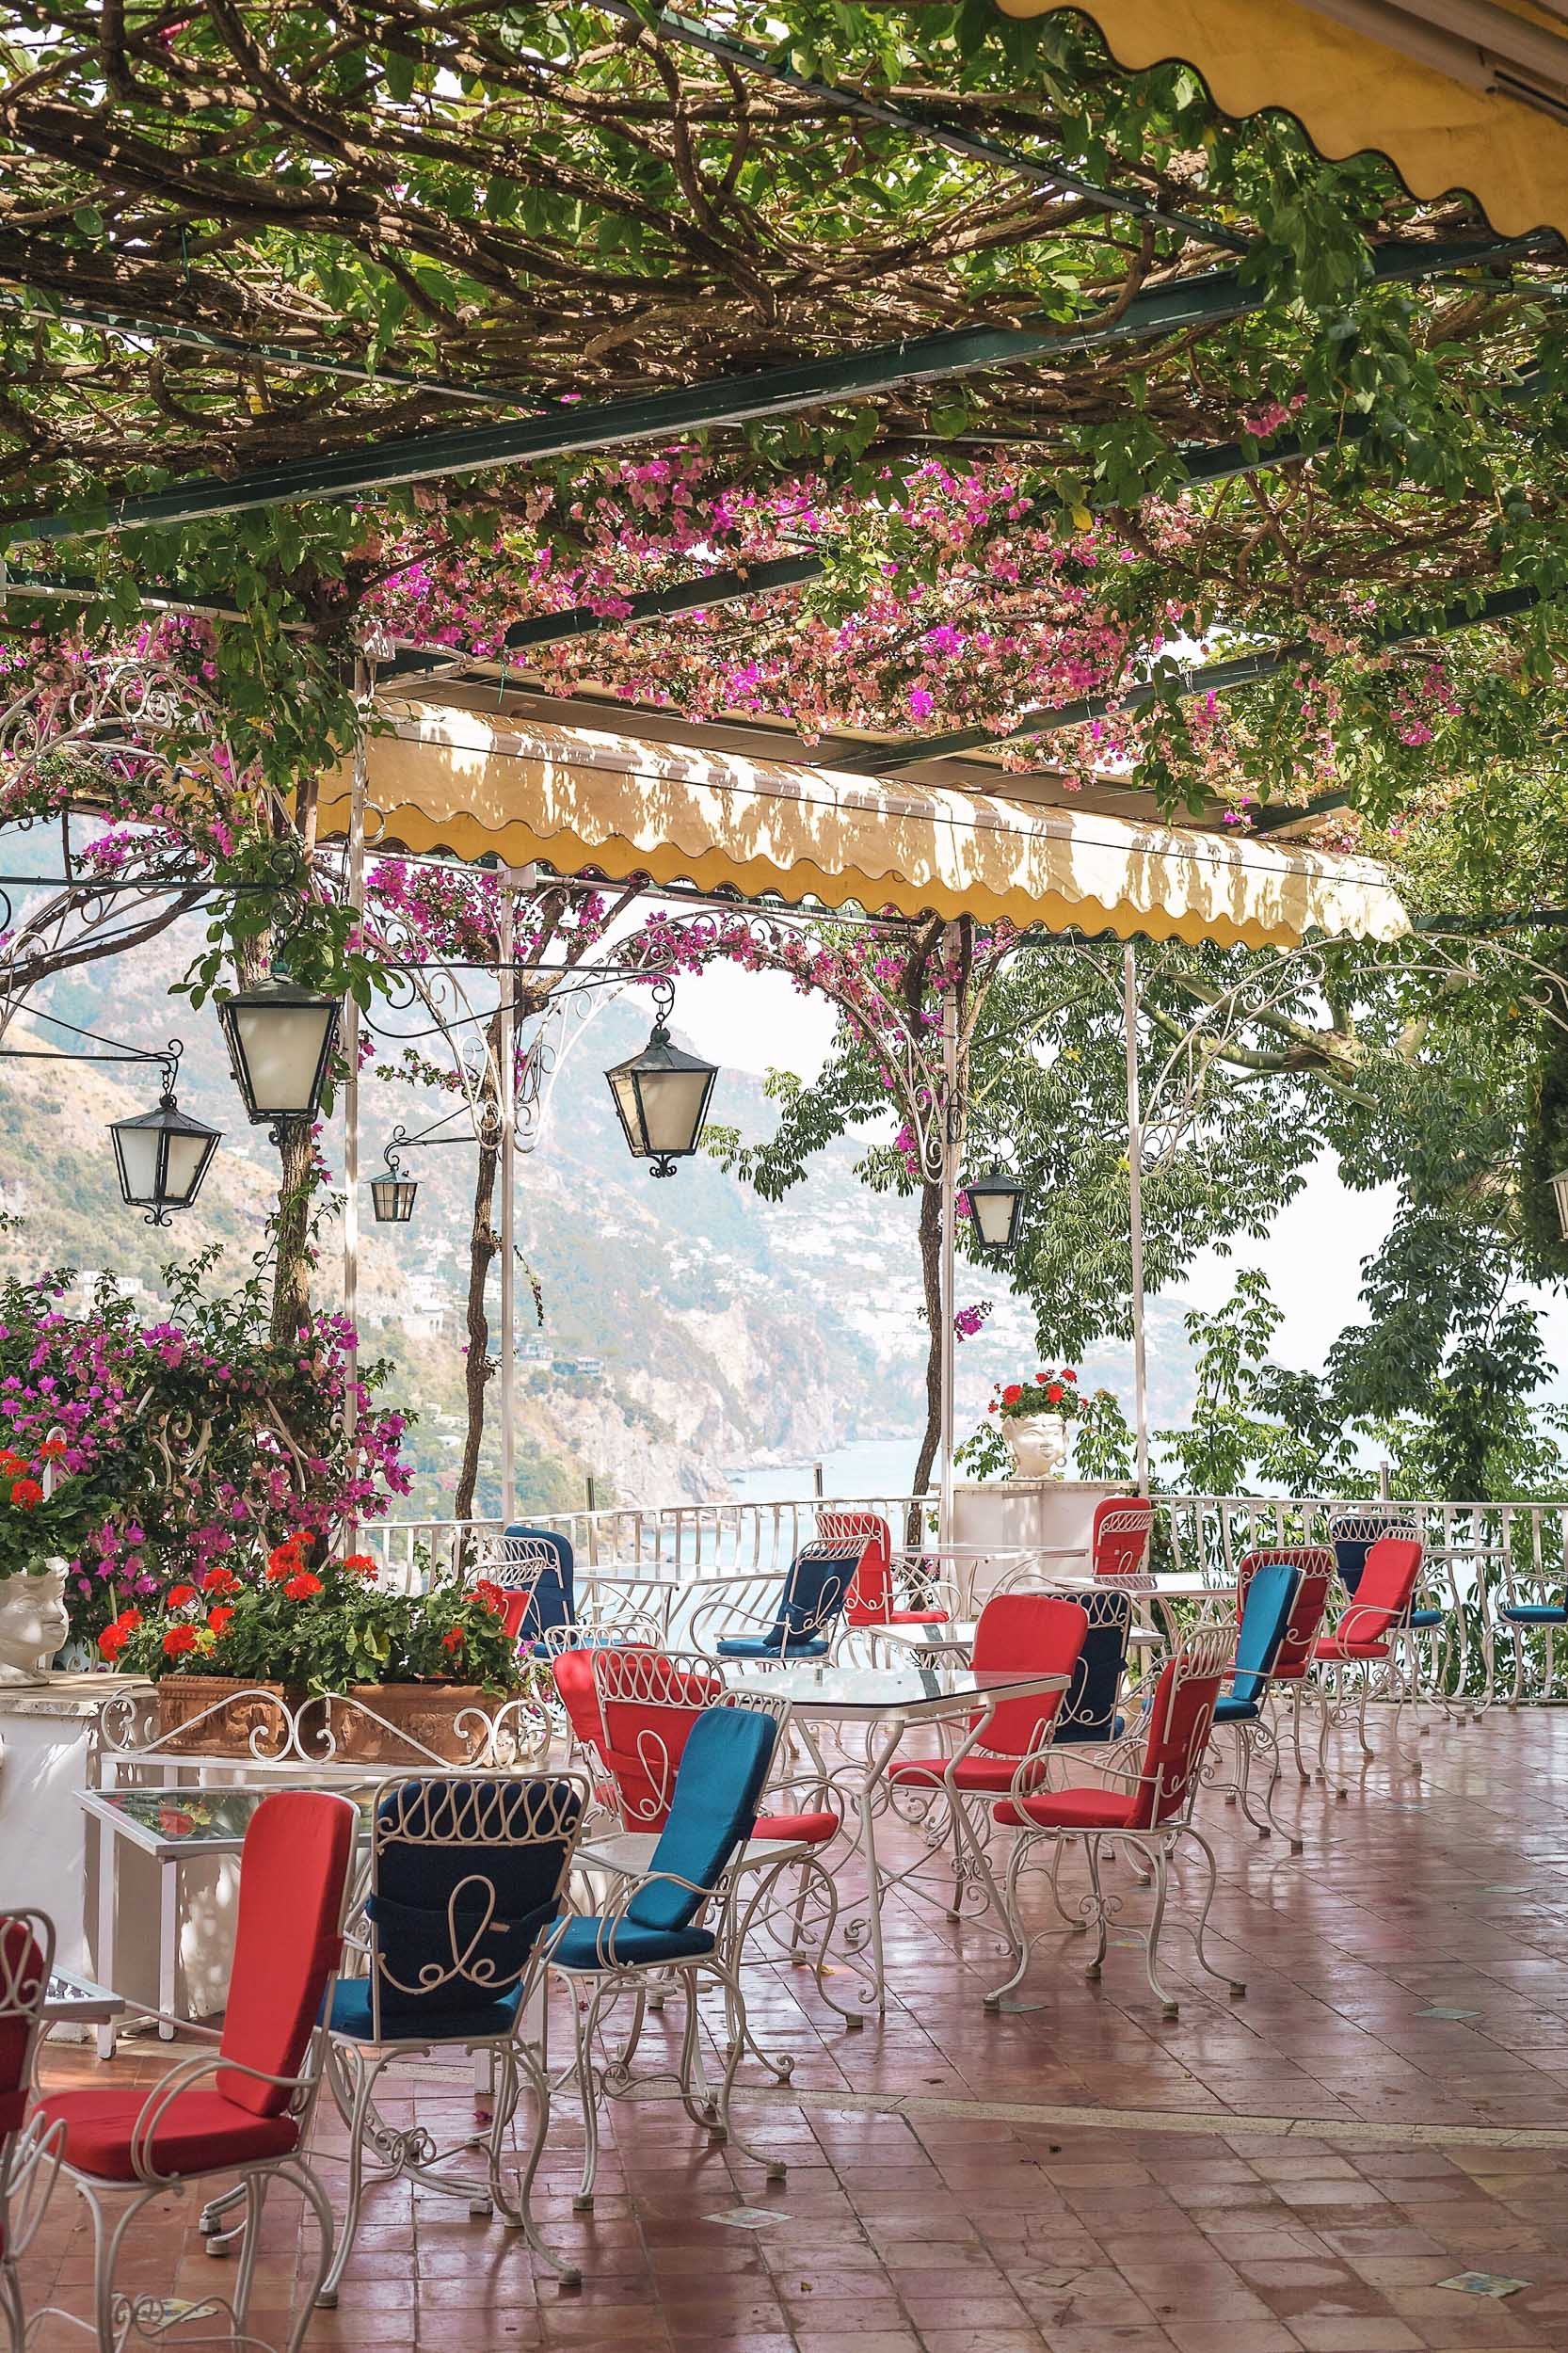 The most beautiful place to grab a meal or a drink in Positano: Il Tridente at Hotel Poseidon